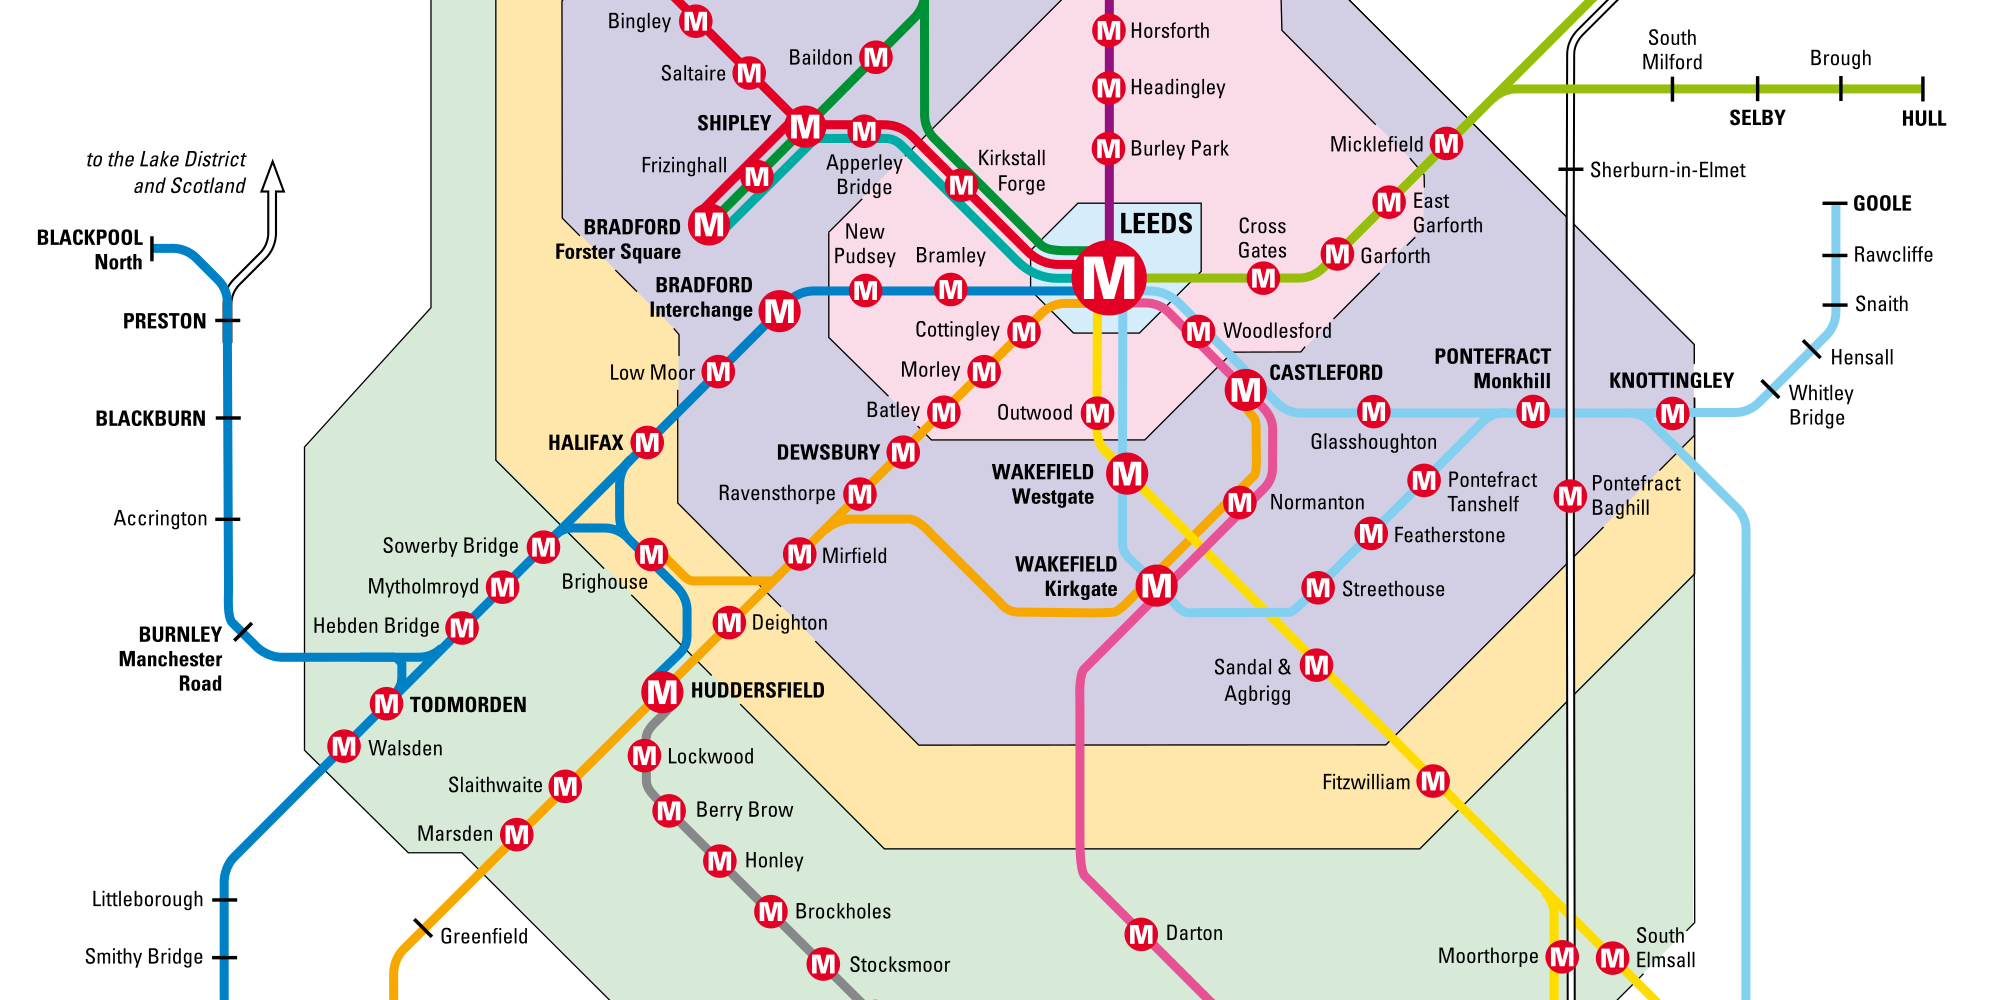 Image: extract of updated MetroTrain map